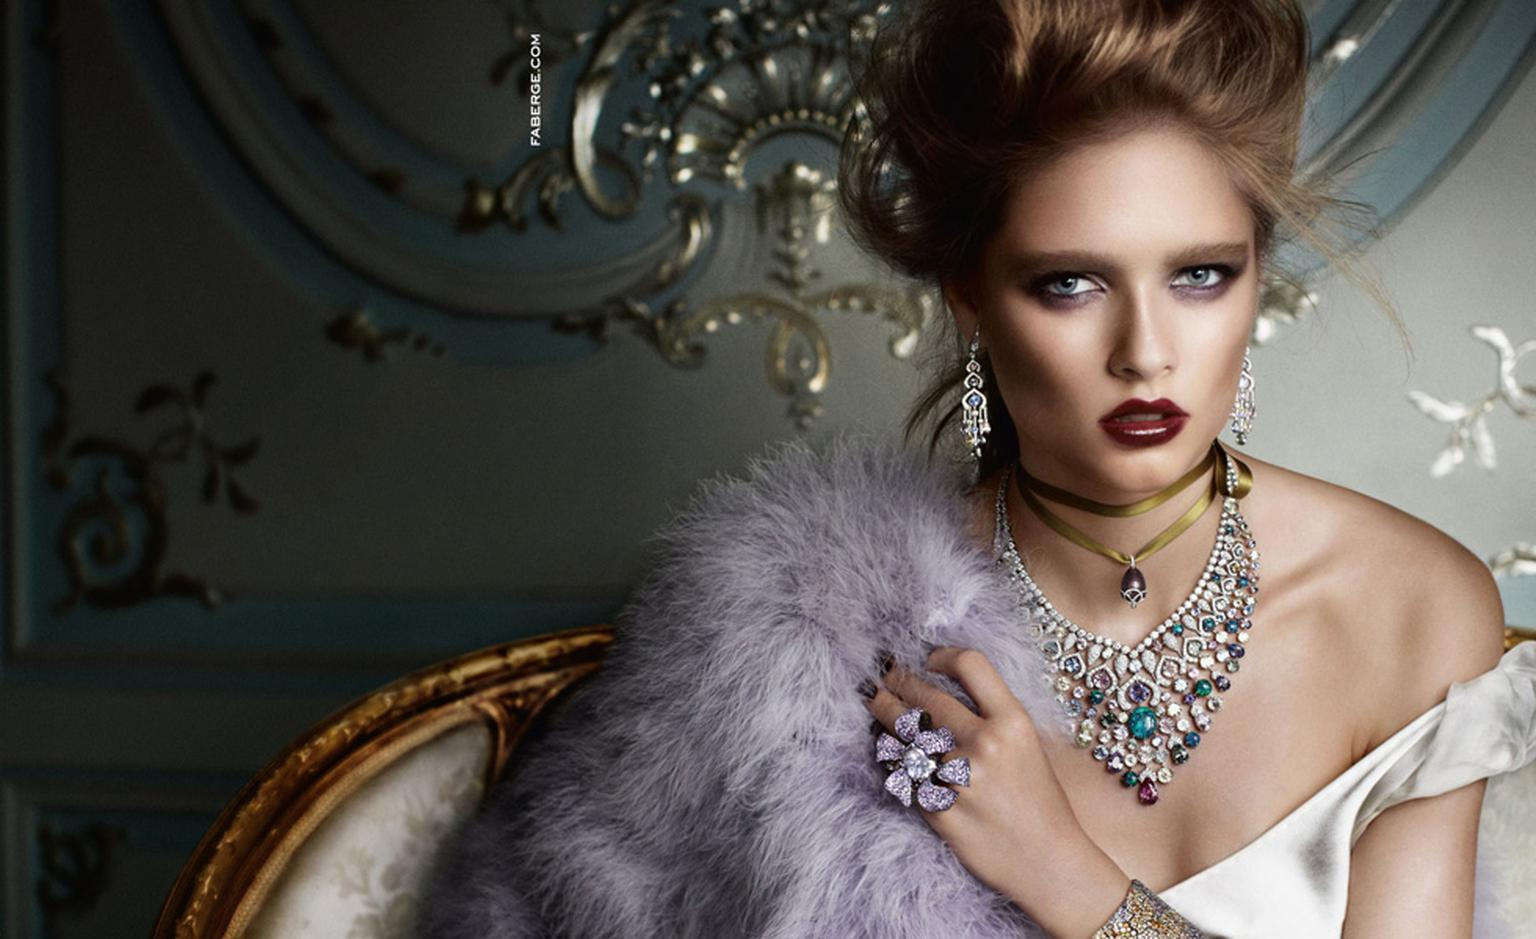 Fabergé's new advertising campaign photographed by Mario Testino.